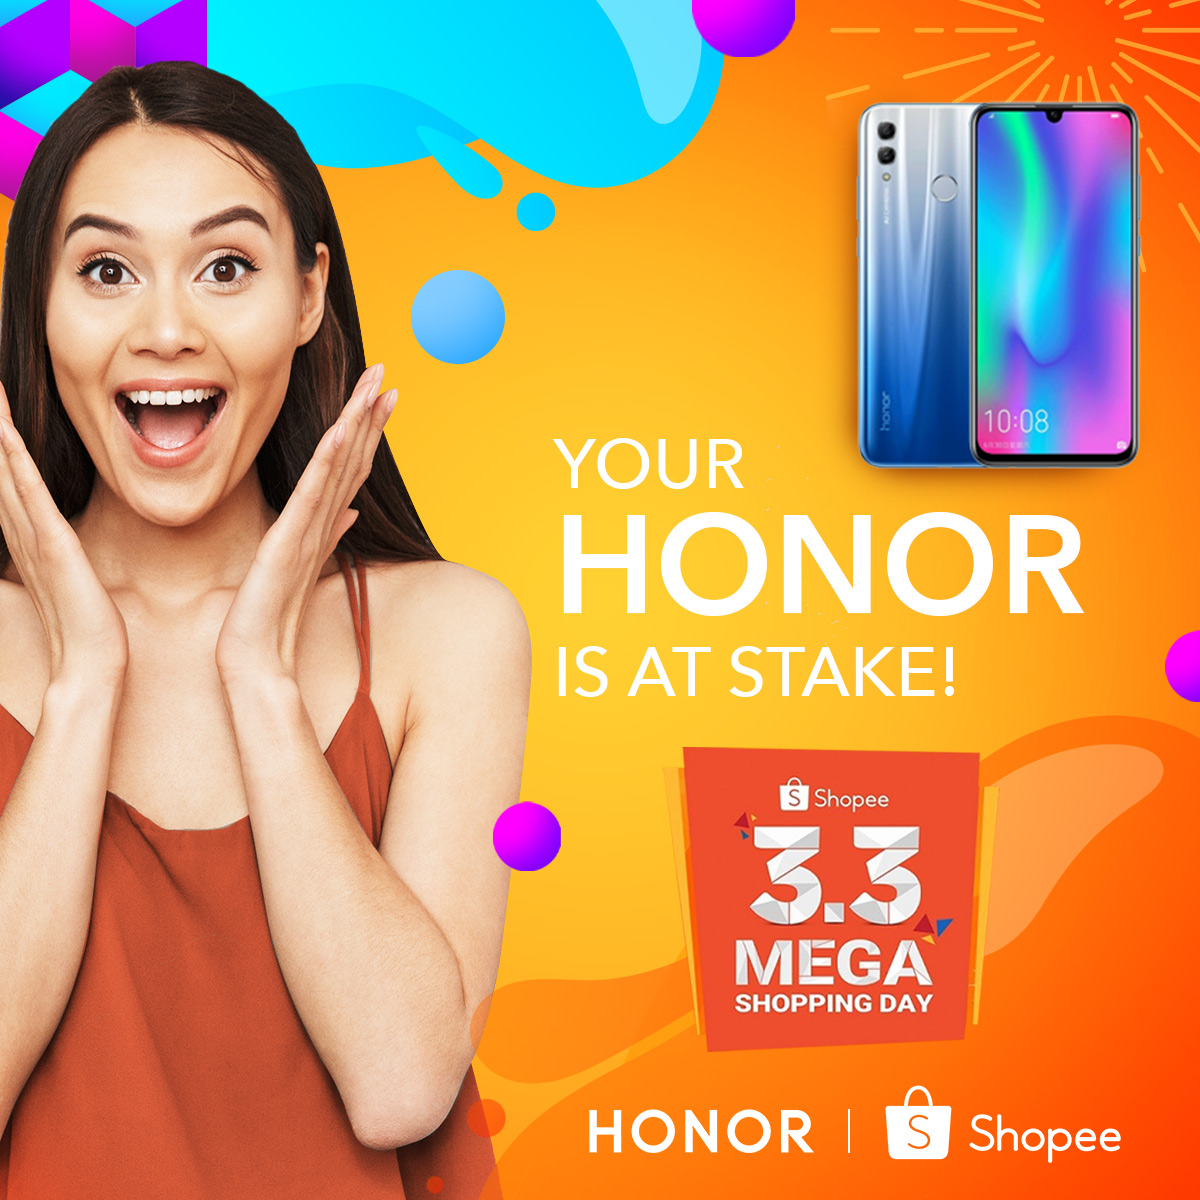 honor shopee, Enjoy Up to 20% Discount on Select Honor Smartphones at Shopee's 3.3 Mega Shopping Day!, Gadget Pilipinas